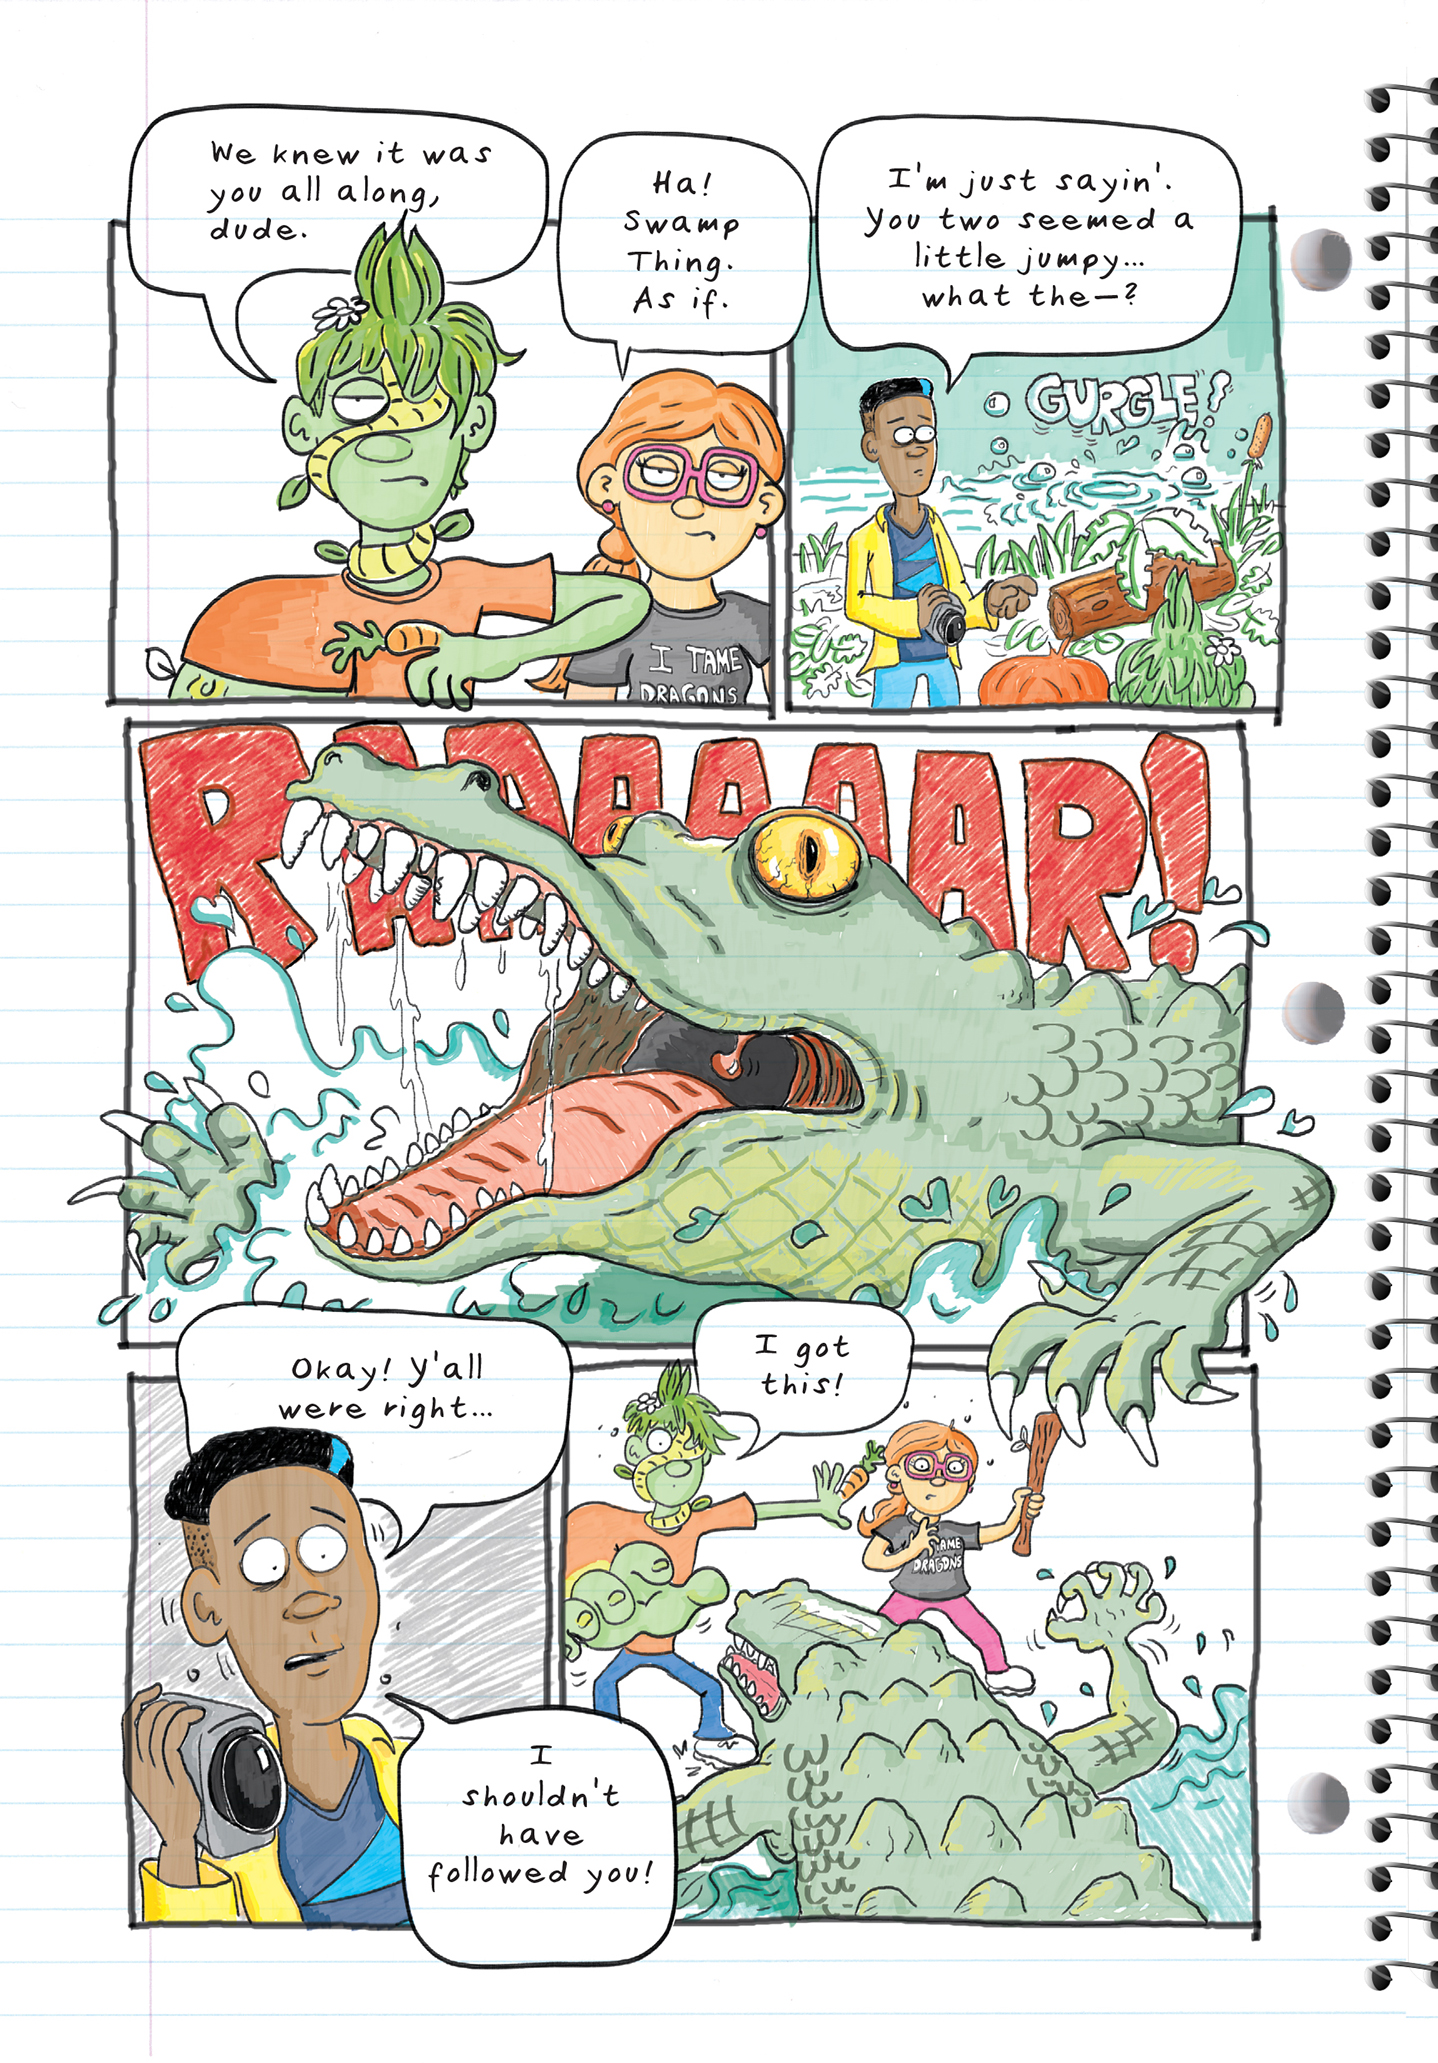 Swamp Kid_preview pages.1,3,4,5,24,25cxs-2-5_LR.jpeg